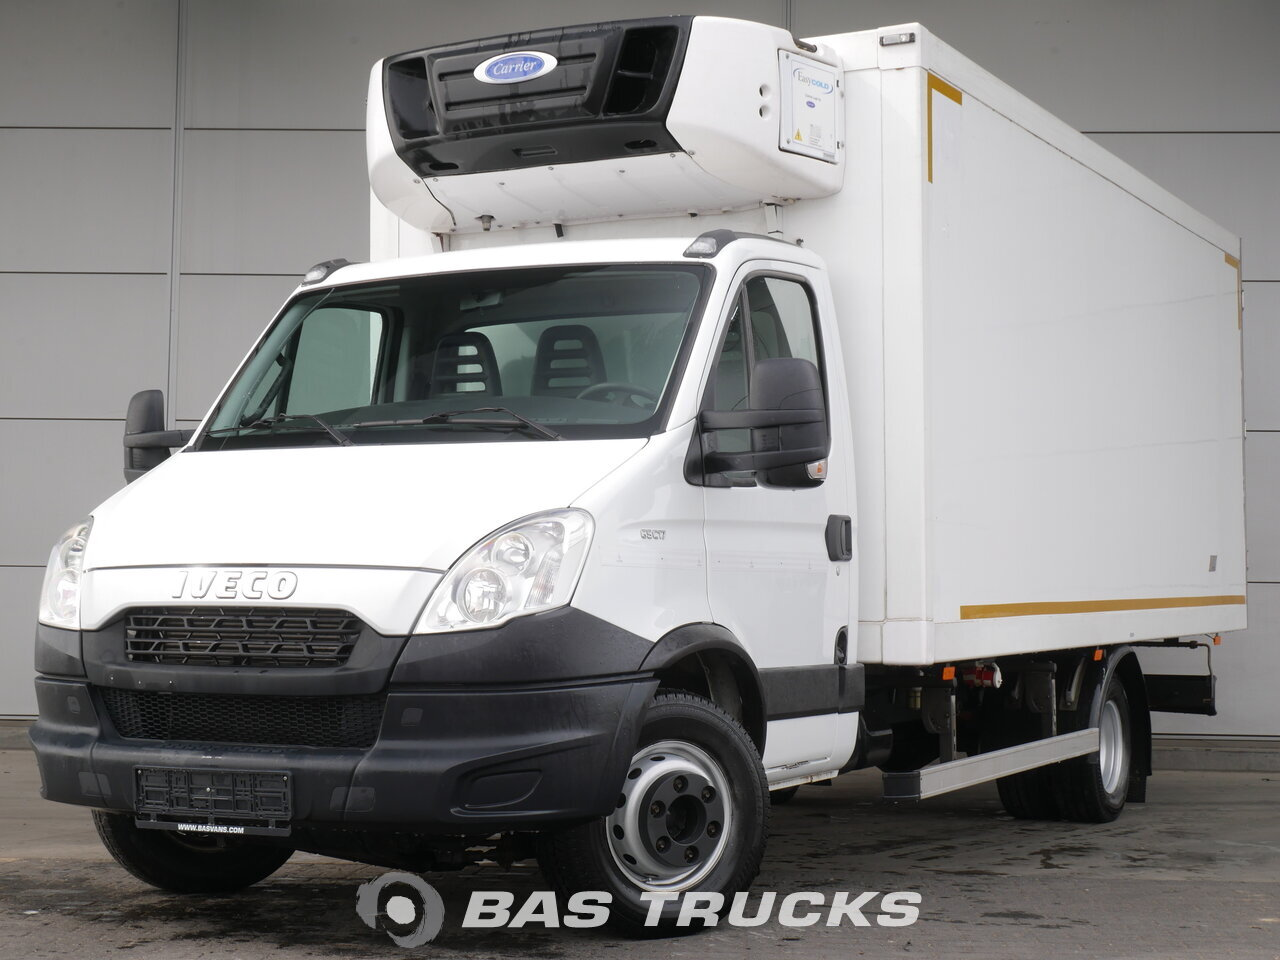 da89729590 IVECO Daily Light commercial vehicle €18900 - BAS Trucks